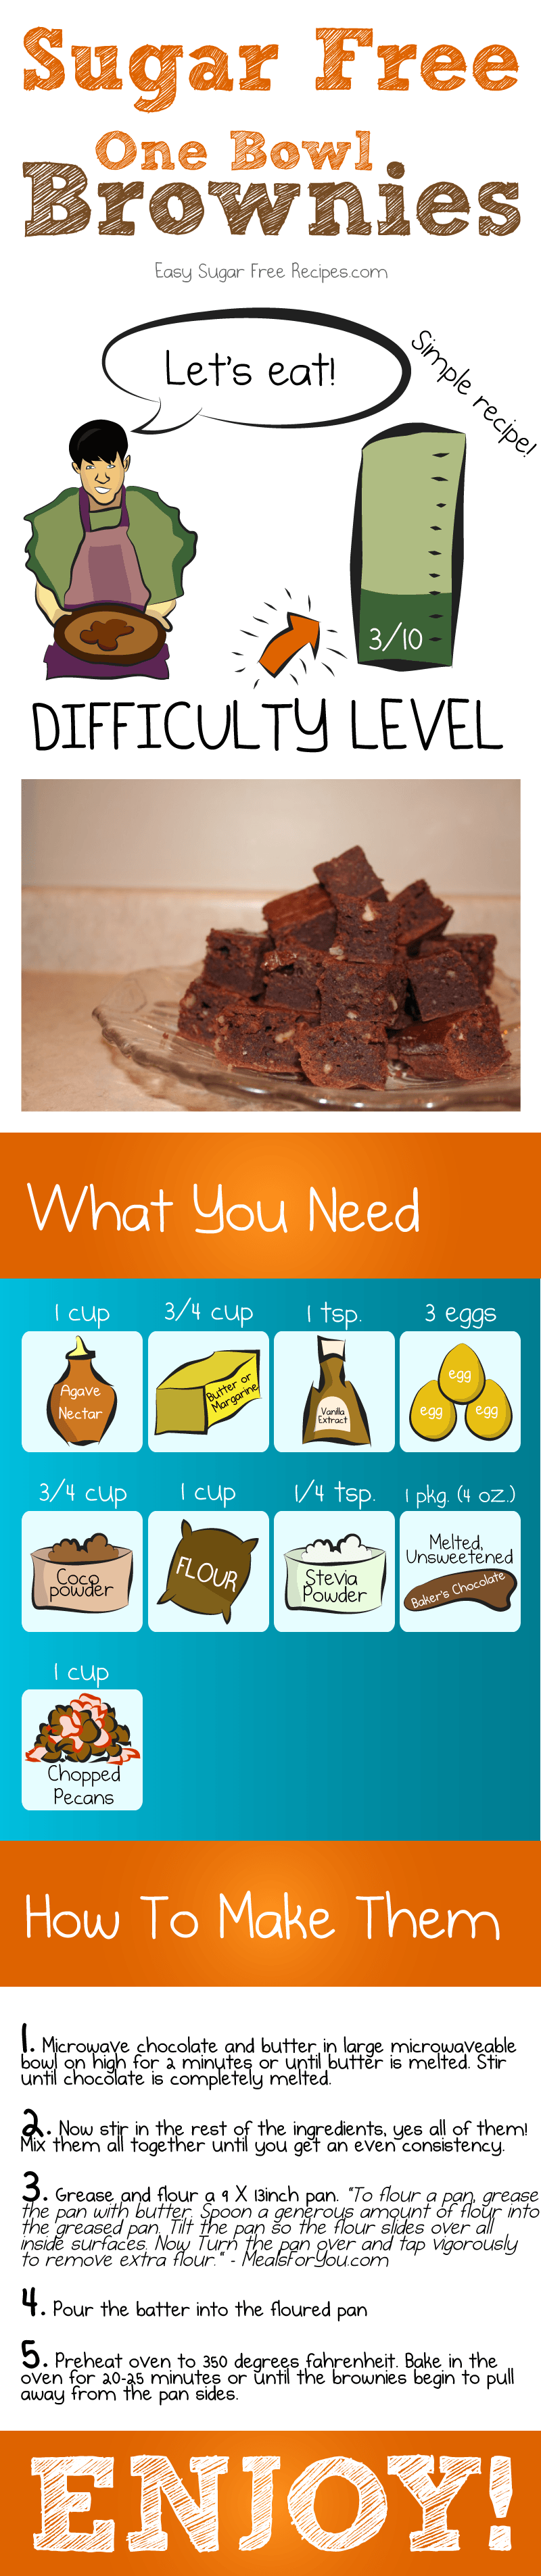 a cartoon comic of sugar free brownies with ingredients and directions